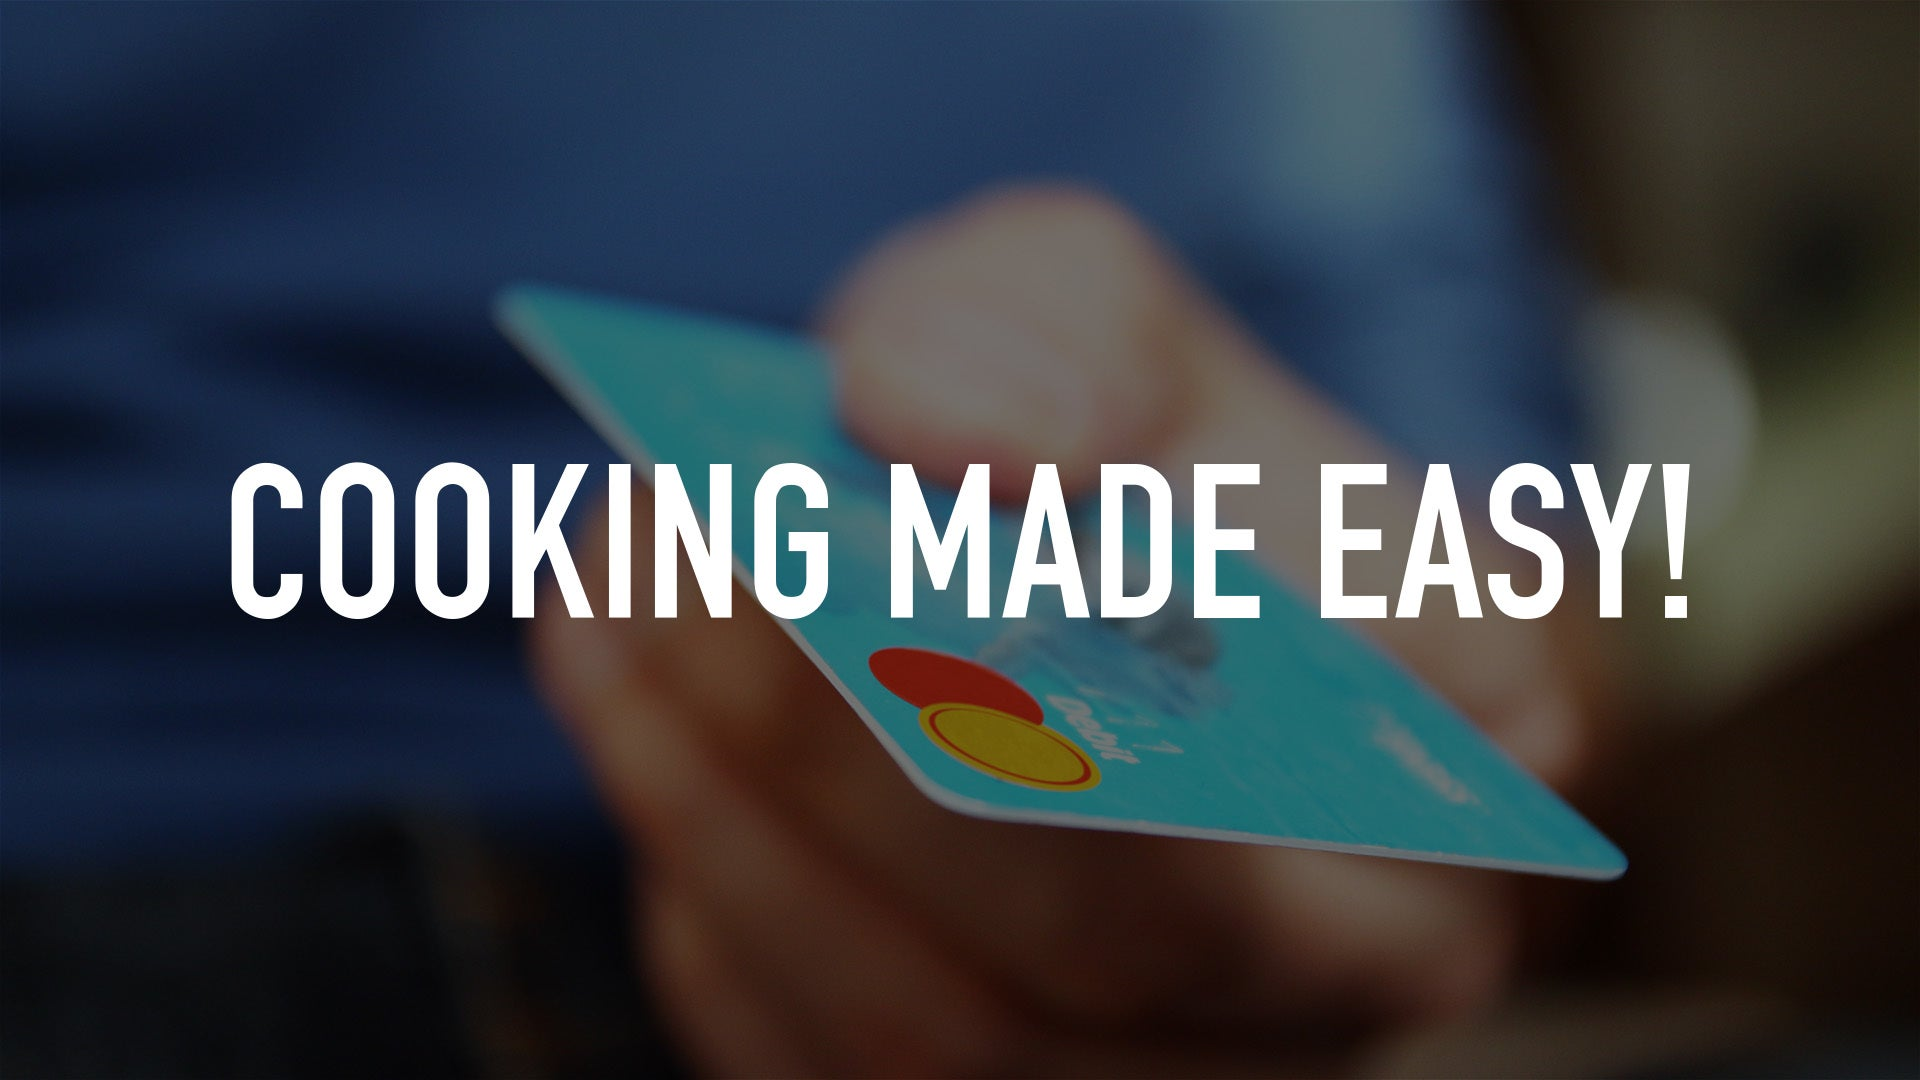 Cooking Made Easy!